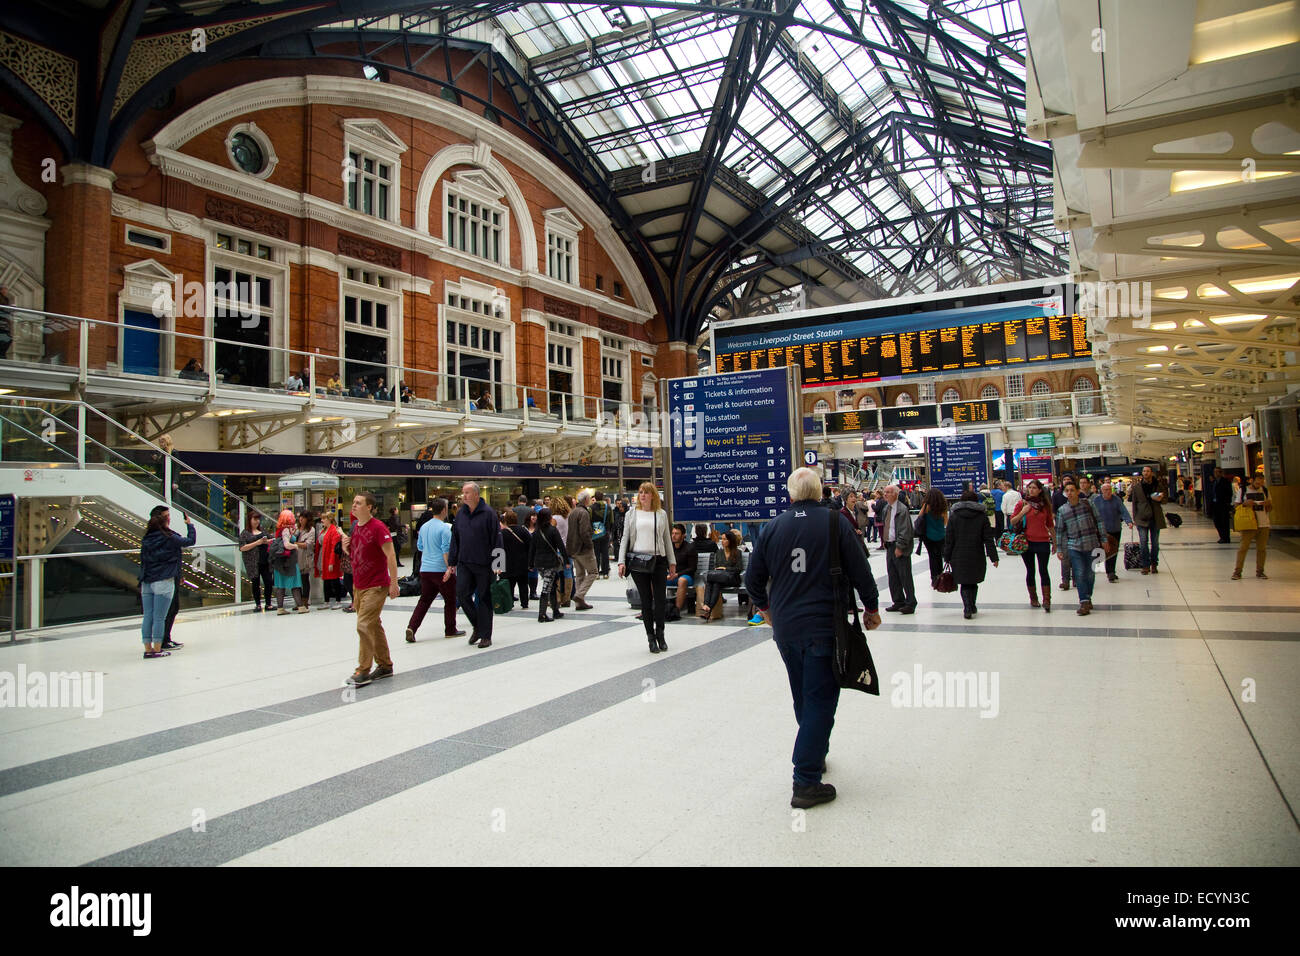 LONDON - OCTOBER 18TH: The interior of Liverpool street station on October 18th, 2014 in London, england, uk. Liverpool - Stock Image